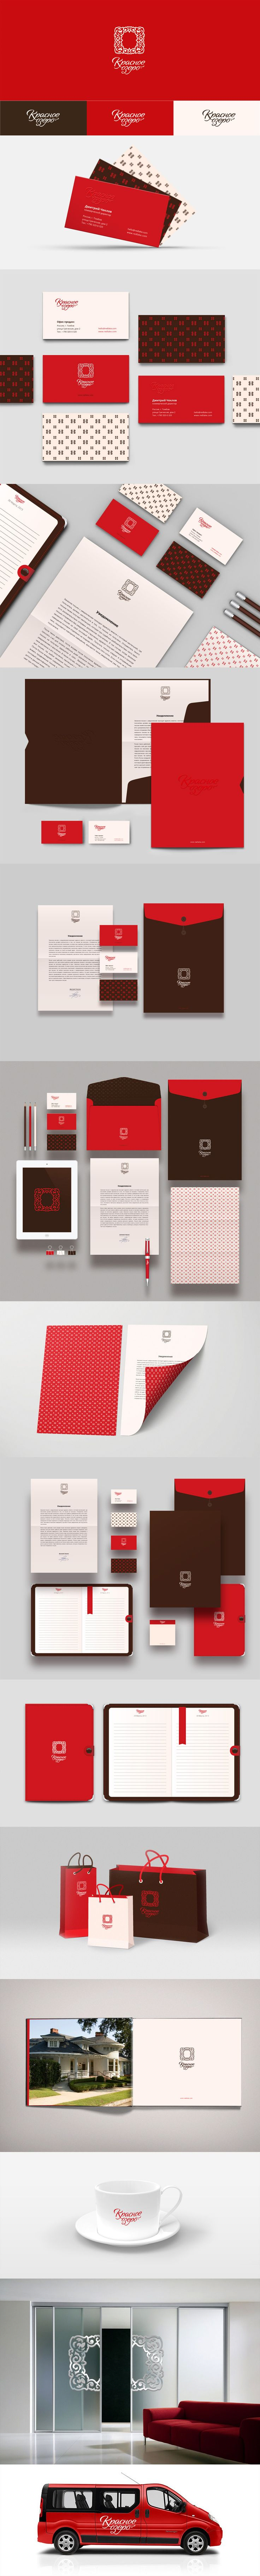 | #stationary #corporate #design #corporatedesign #logo #identity #branding #marketing <<< repinned by www.BlickeDeeler.de